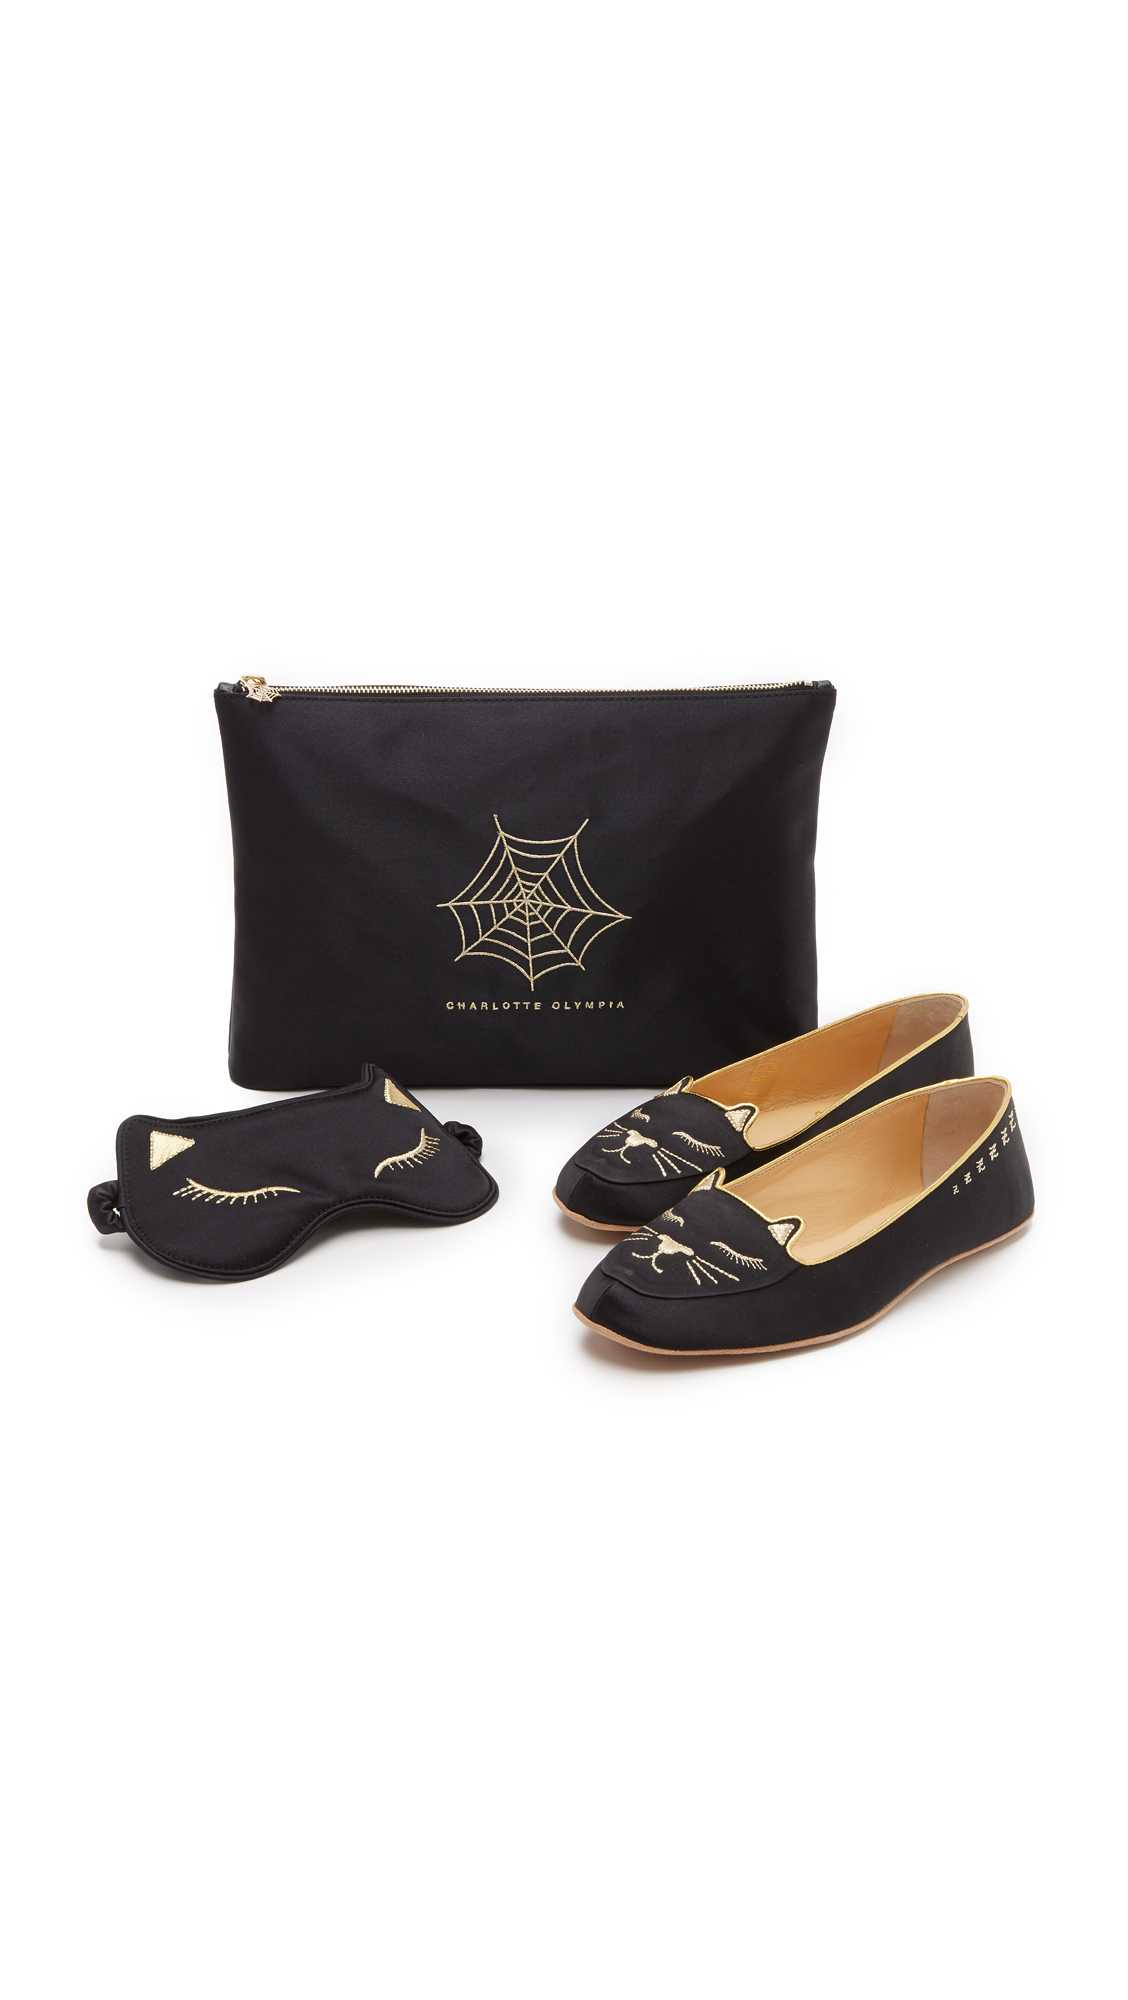 Charlotte Olympia Cat Nap Slipper Set - Black